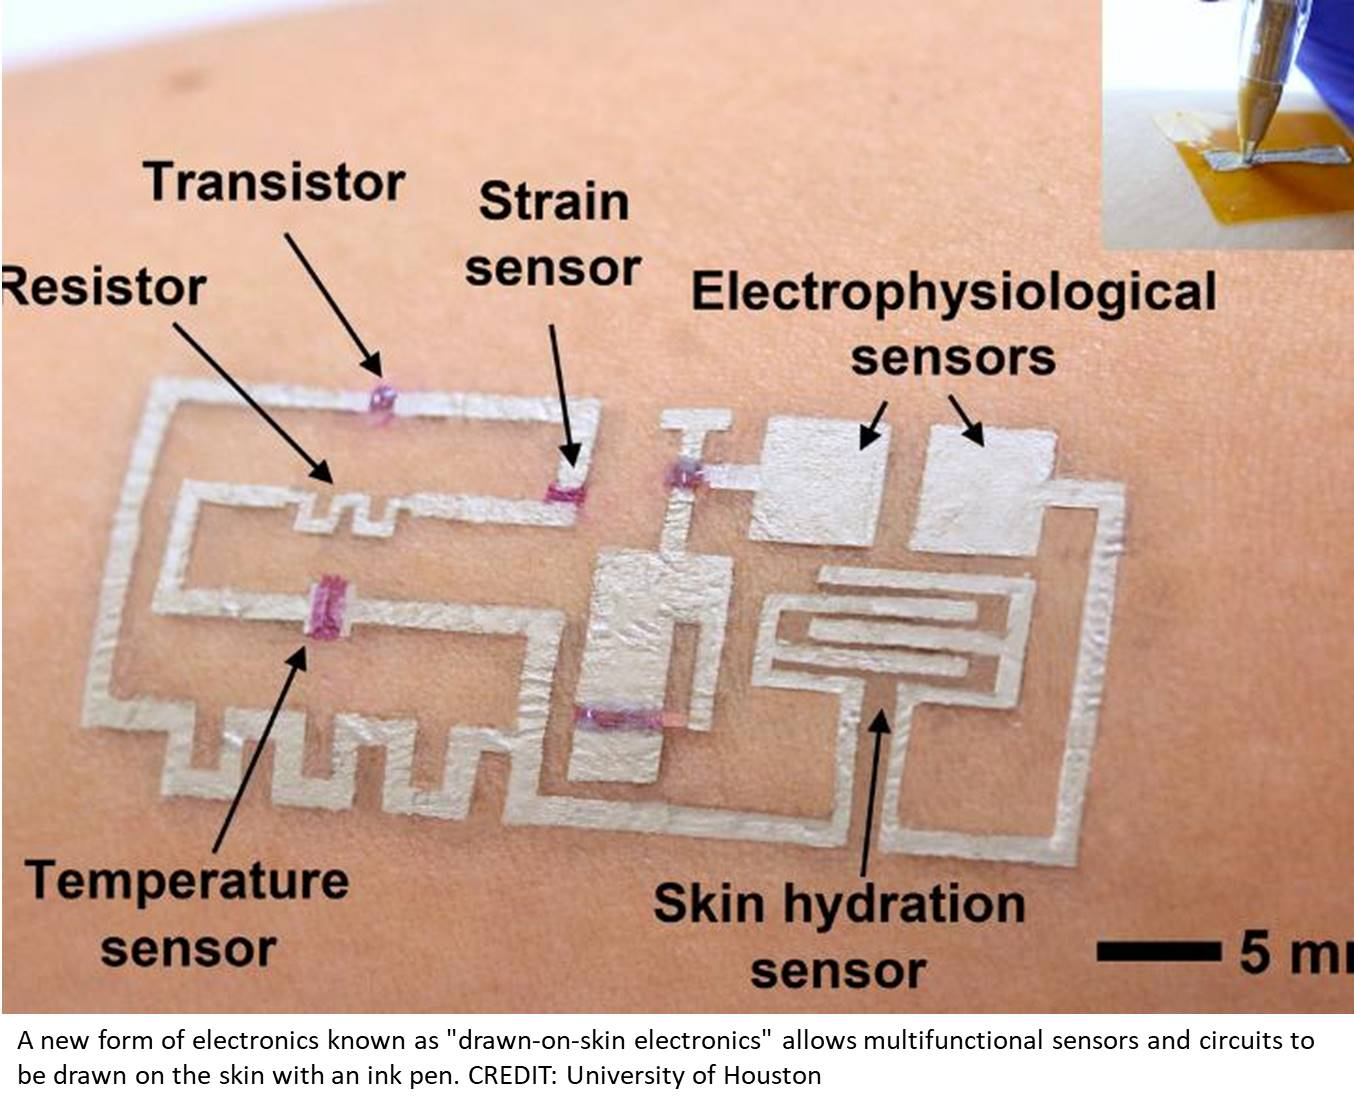 'Drawn-on-skin' electronics platform provides better data for personalized care